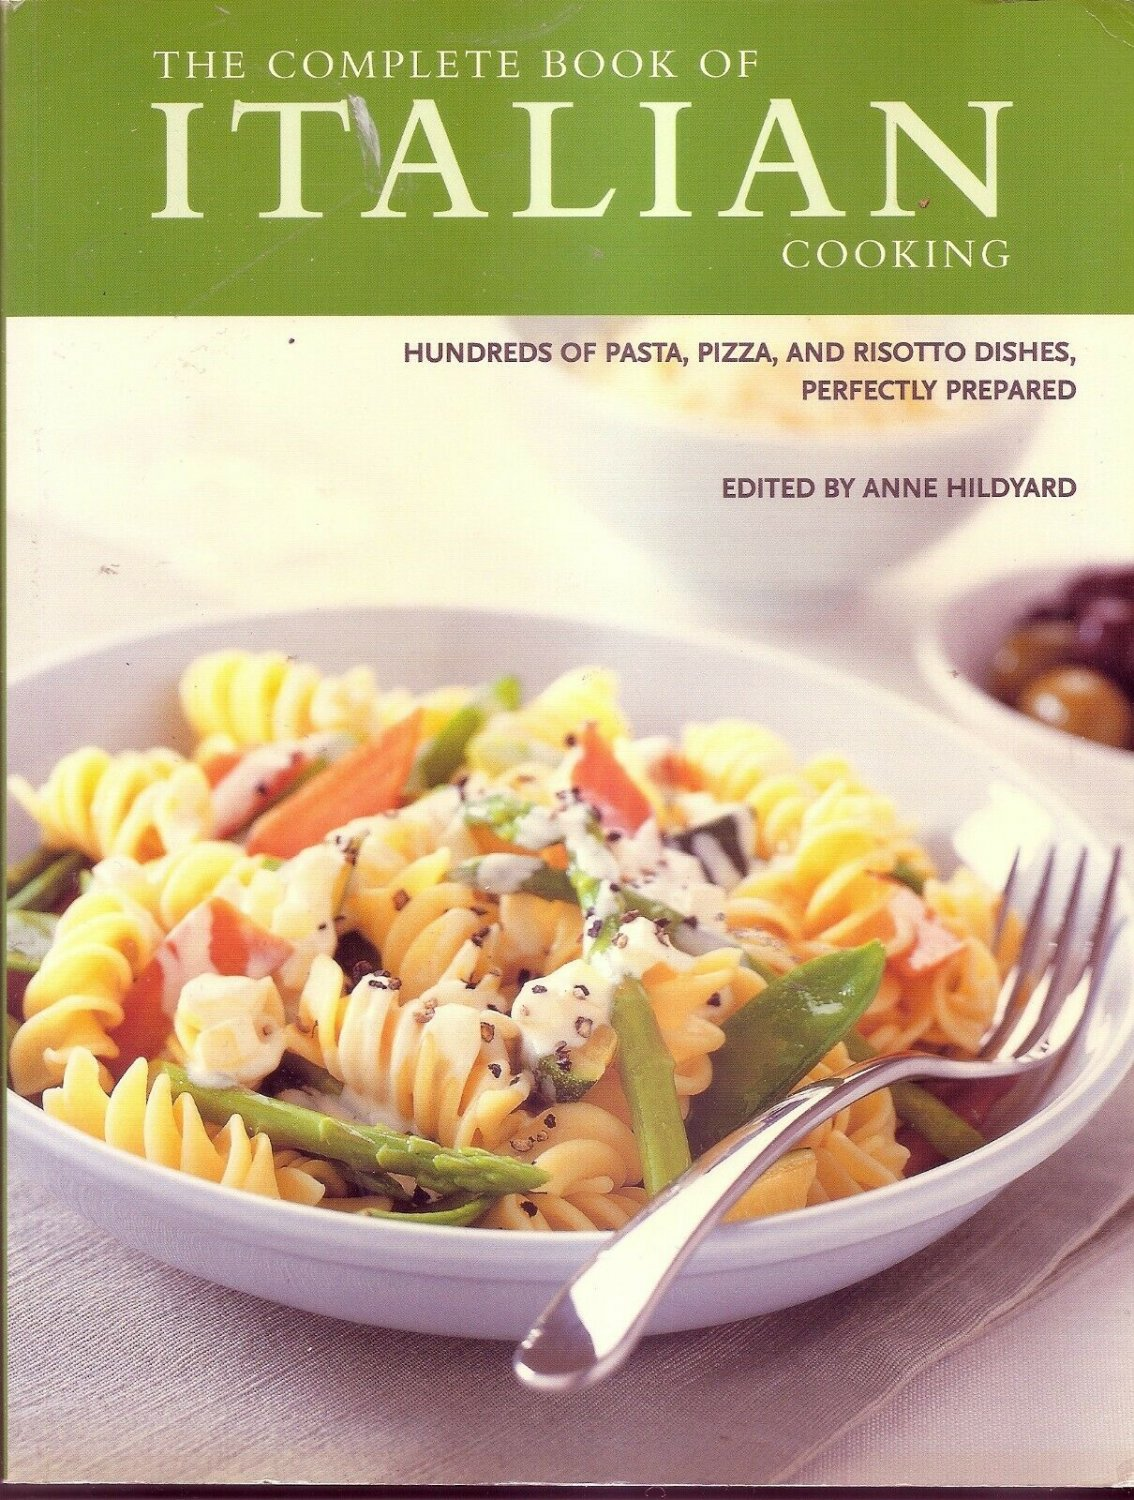 The Complete Book Of ITALIAN Cooking Edited By Anne Hildyard Very Good Condition